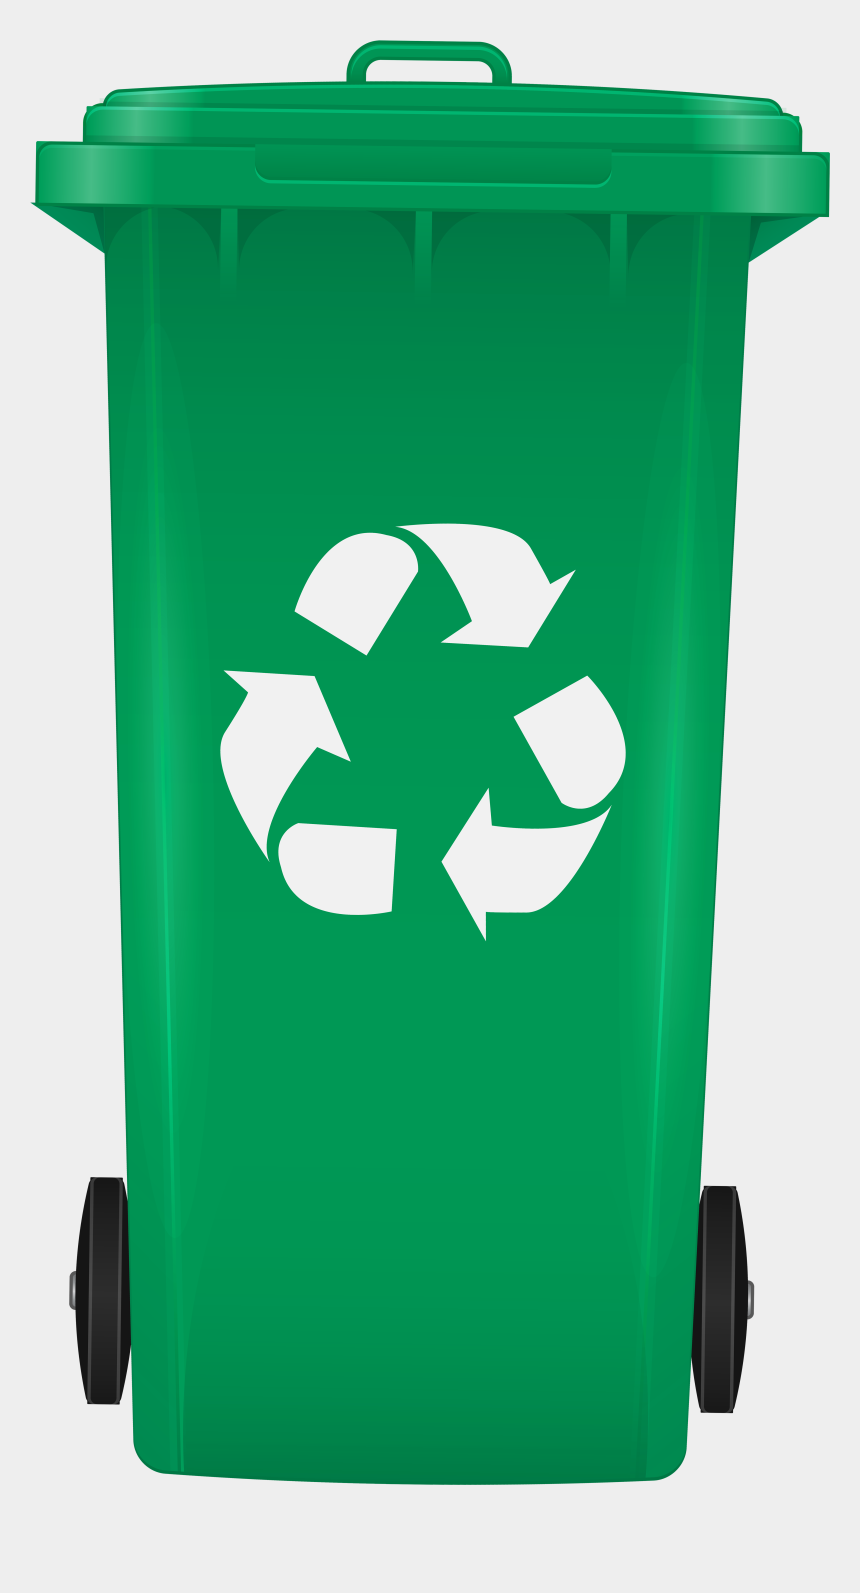 recycling clipart, Cartoons - Recycling Bin Png Clip Art - Don T Forget Your Reusable Bags